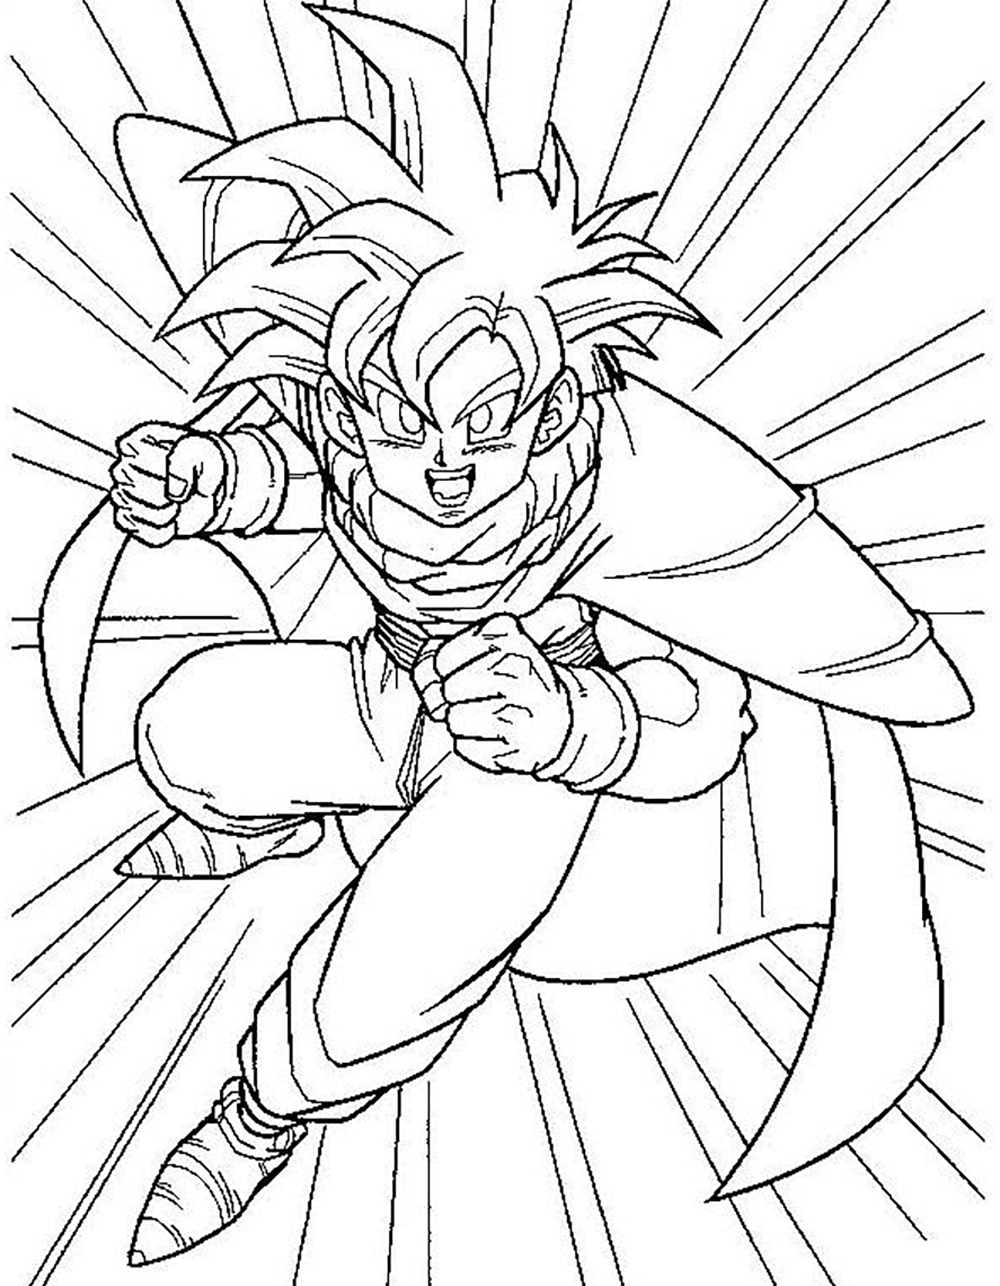 Facile Dragon Ball Gohan Ado Super Saiyan Coloriage Dragon Ball